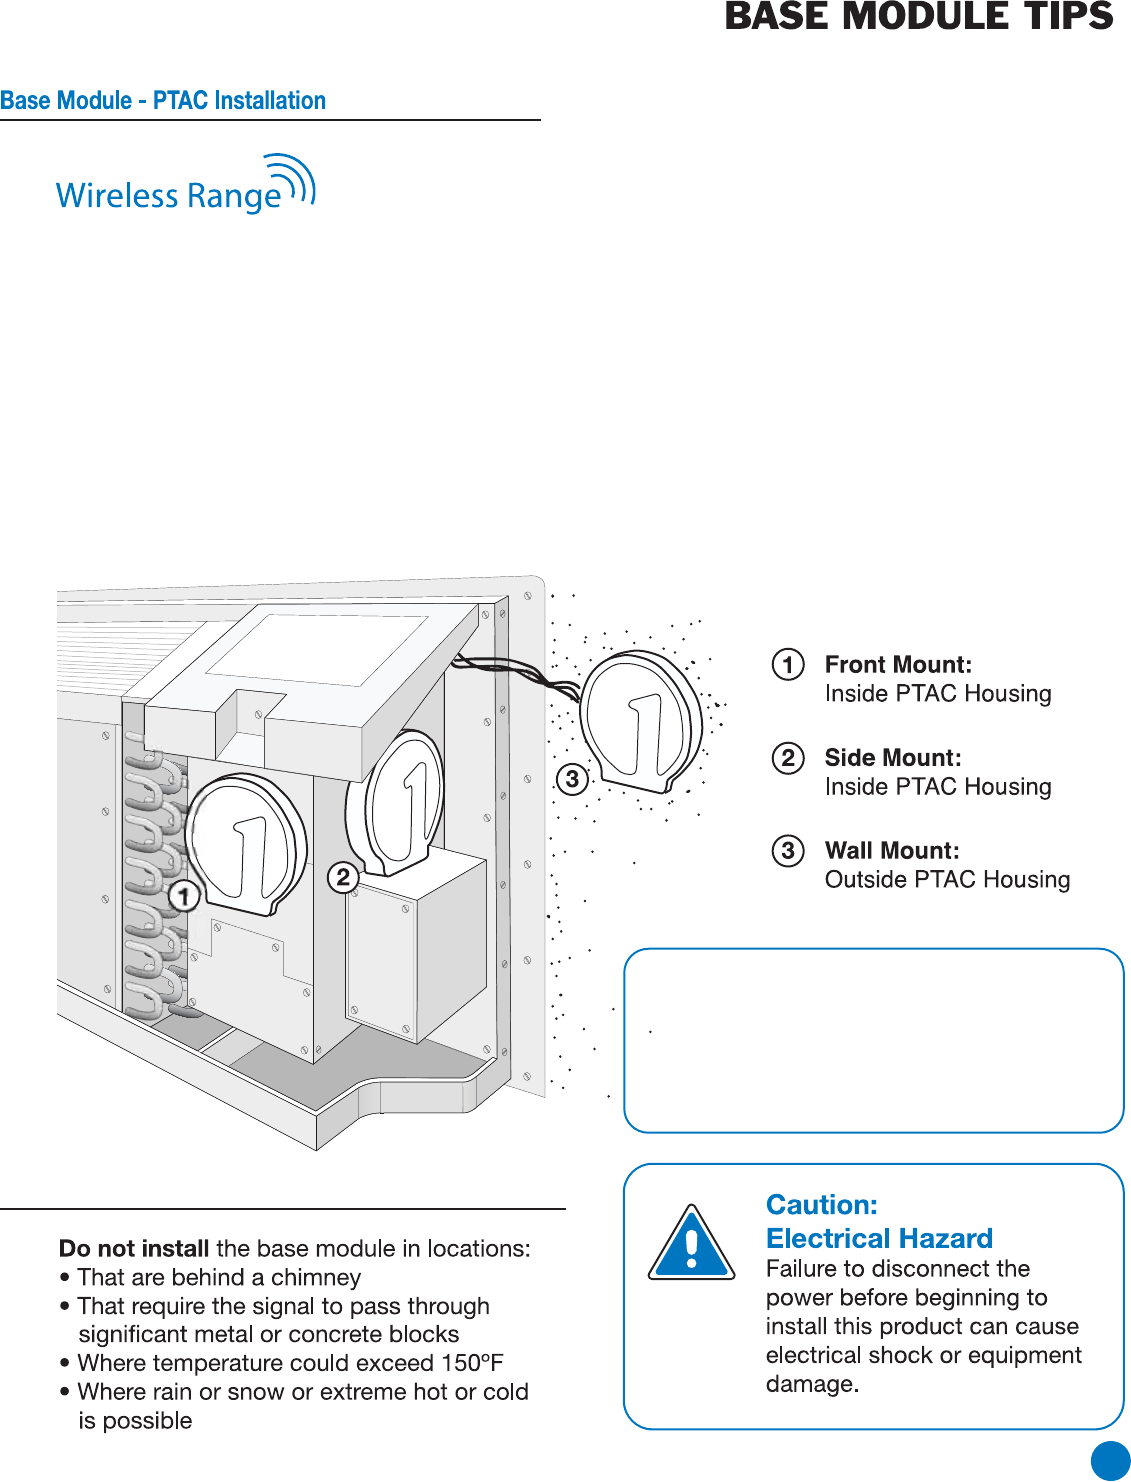 Page 5 Of Friedrich Thermostat Wrt1 User Guide Manualsonlinecom Ptac Wiring Range Between The And Base Module Is Up To 100 Feet With No Obstructions